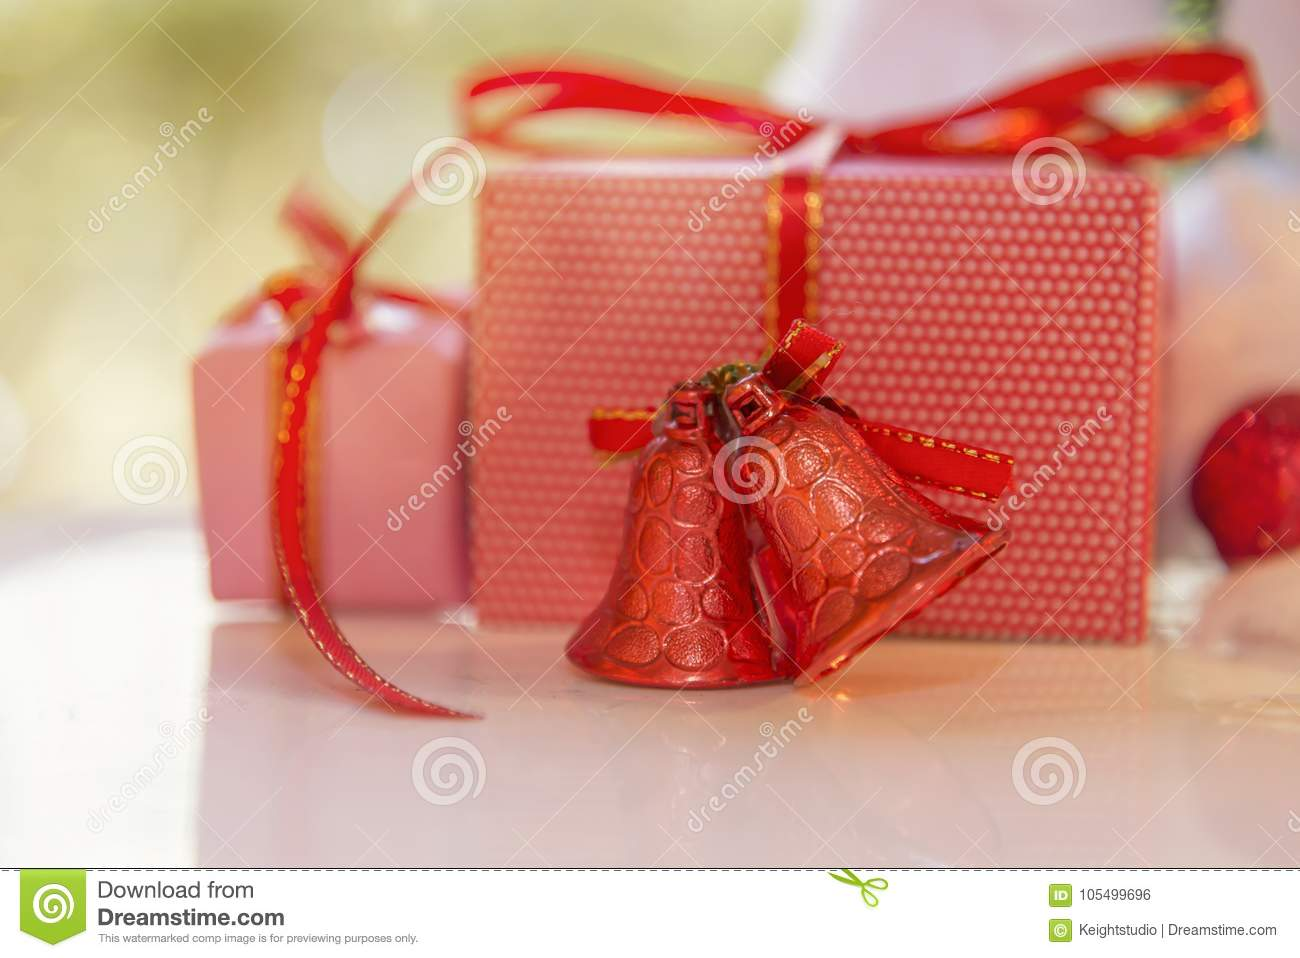 Christmas gift box, red jingle bell and blurred fir tree against